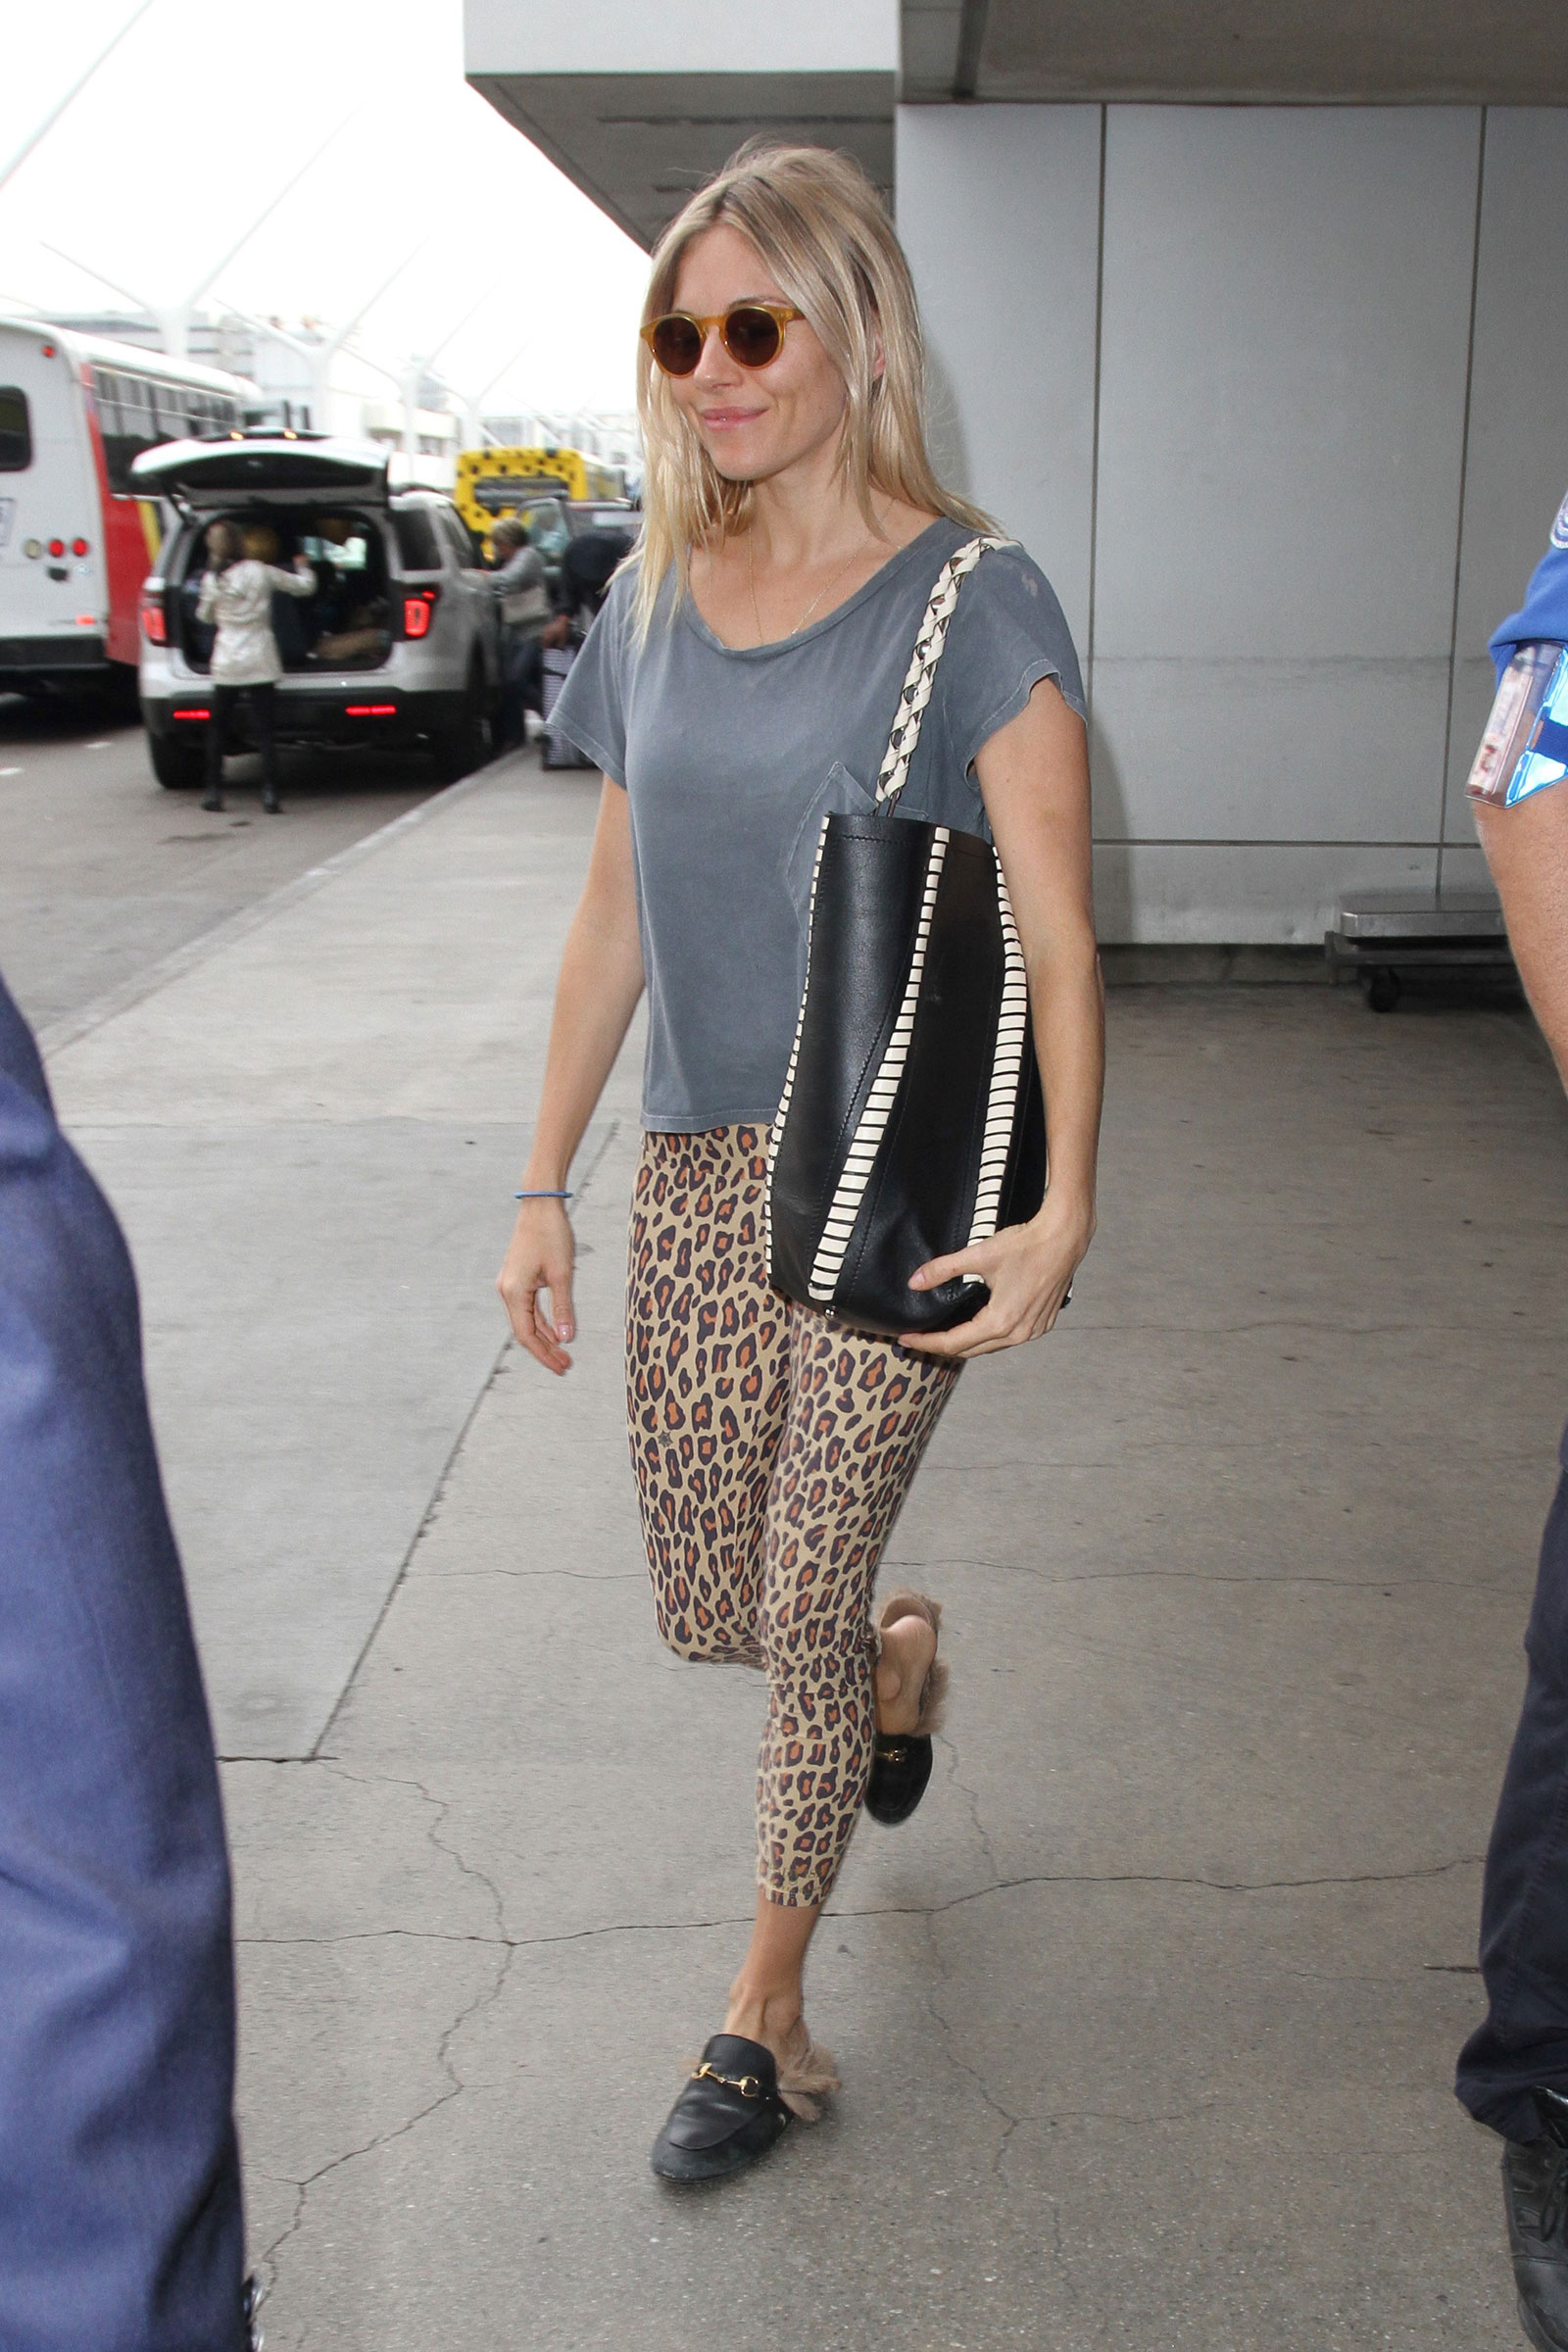 Shop Sienna Miller's leopard leggings and Gucci mules look for less.